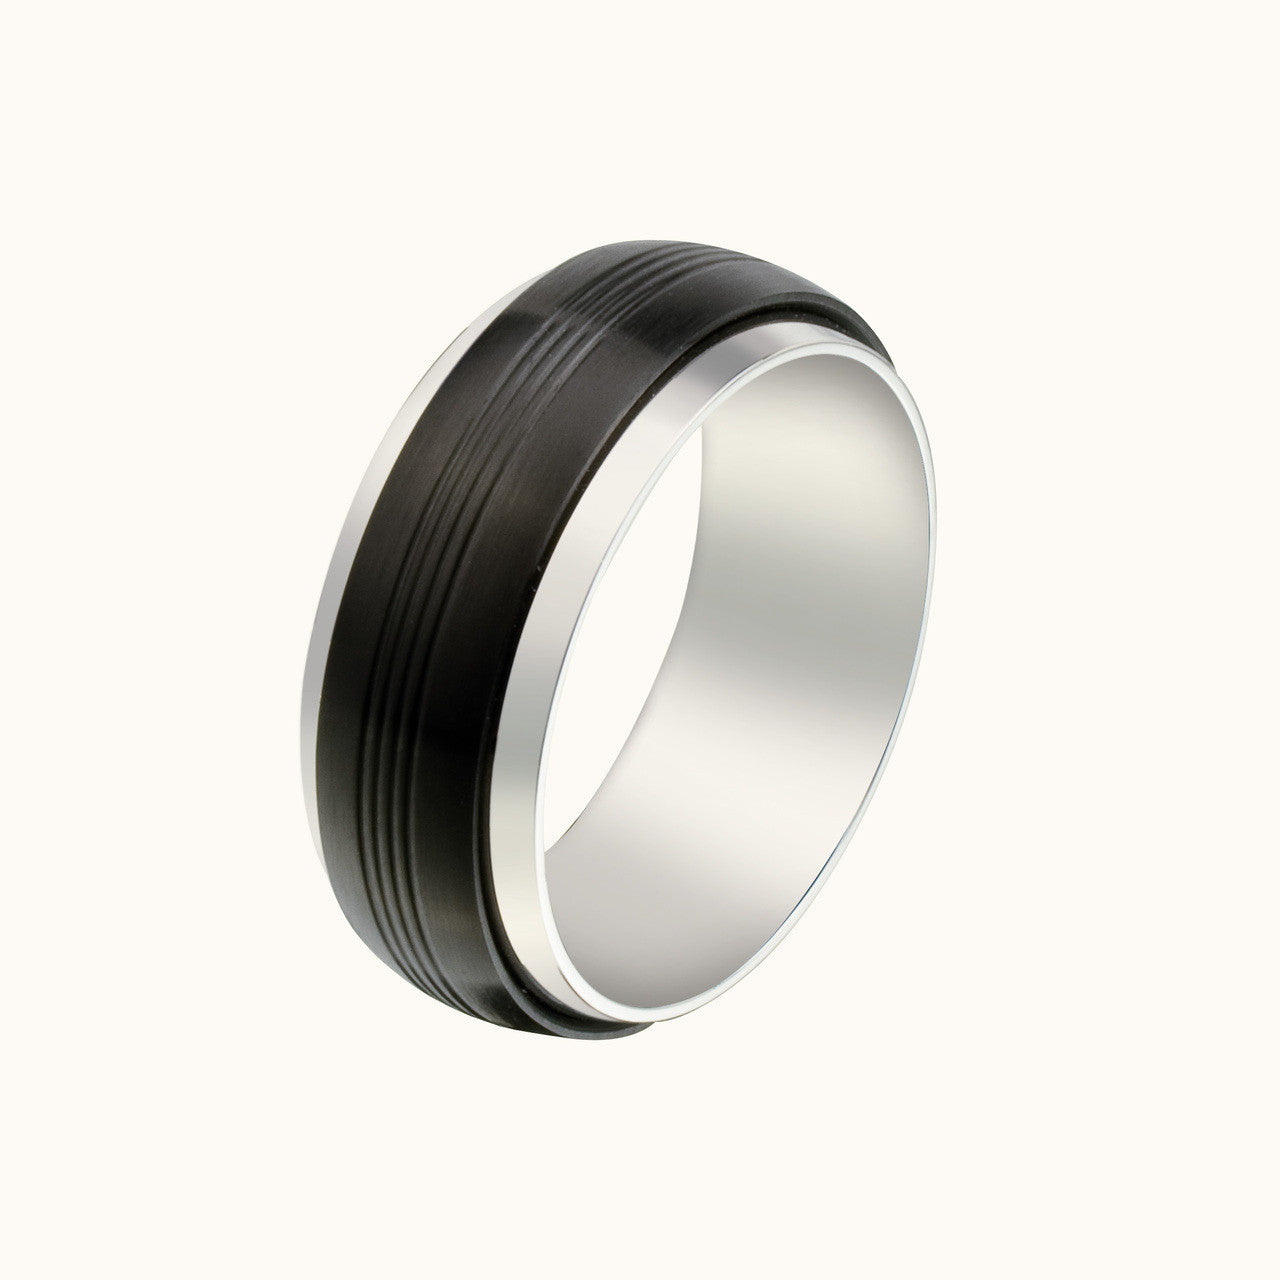 RSS04 stainless steel ring